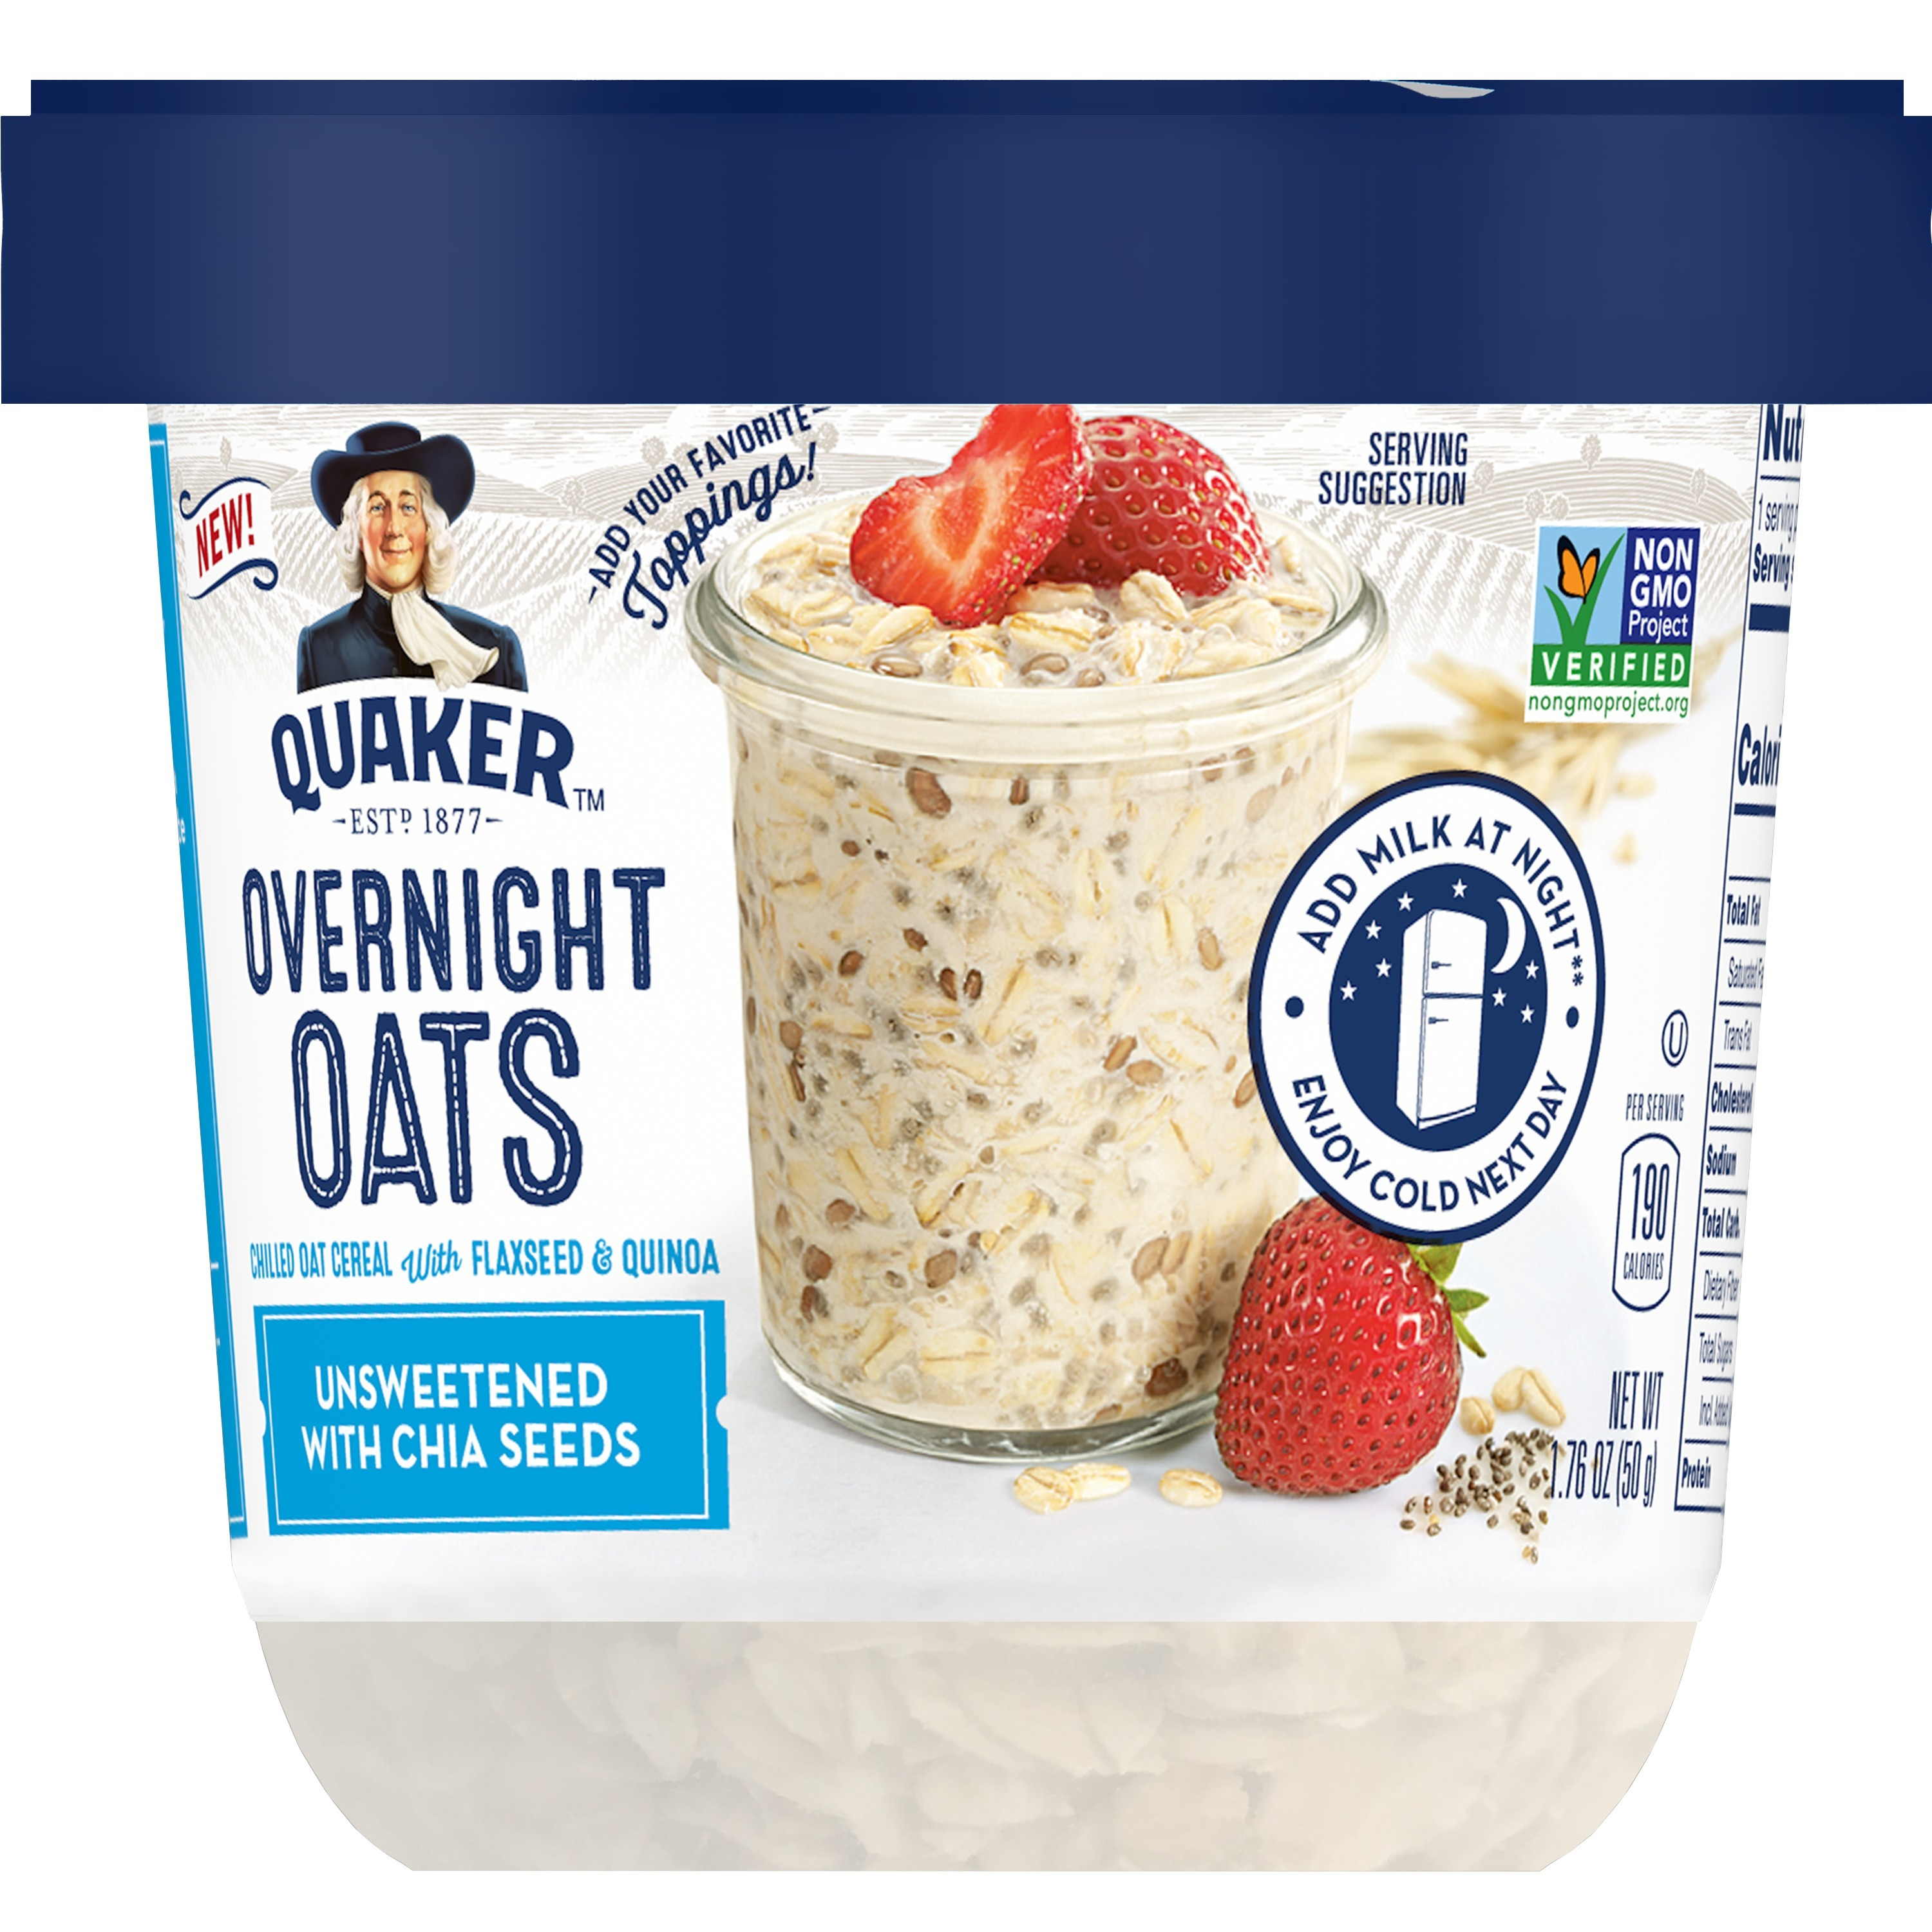 Quaker Overnight Oats, Unsweetened with Chia, Breakfast Cereal, 2.61 oz Cup